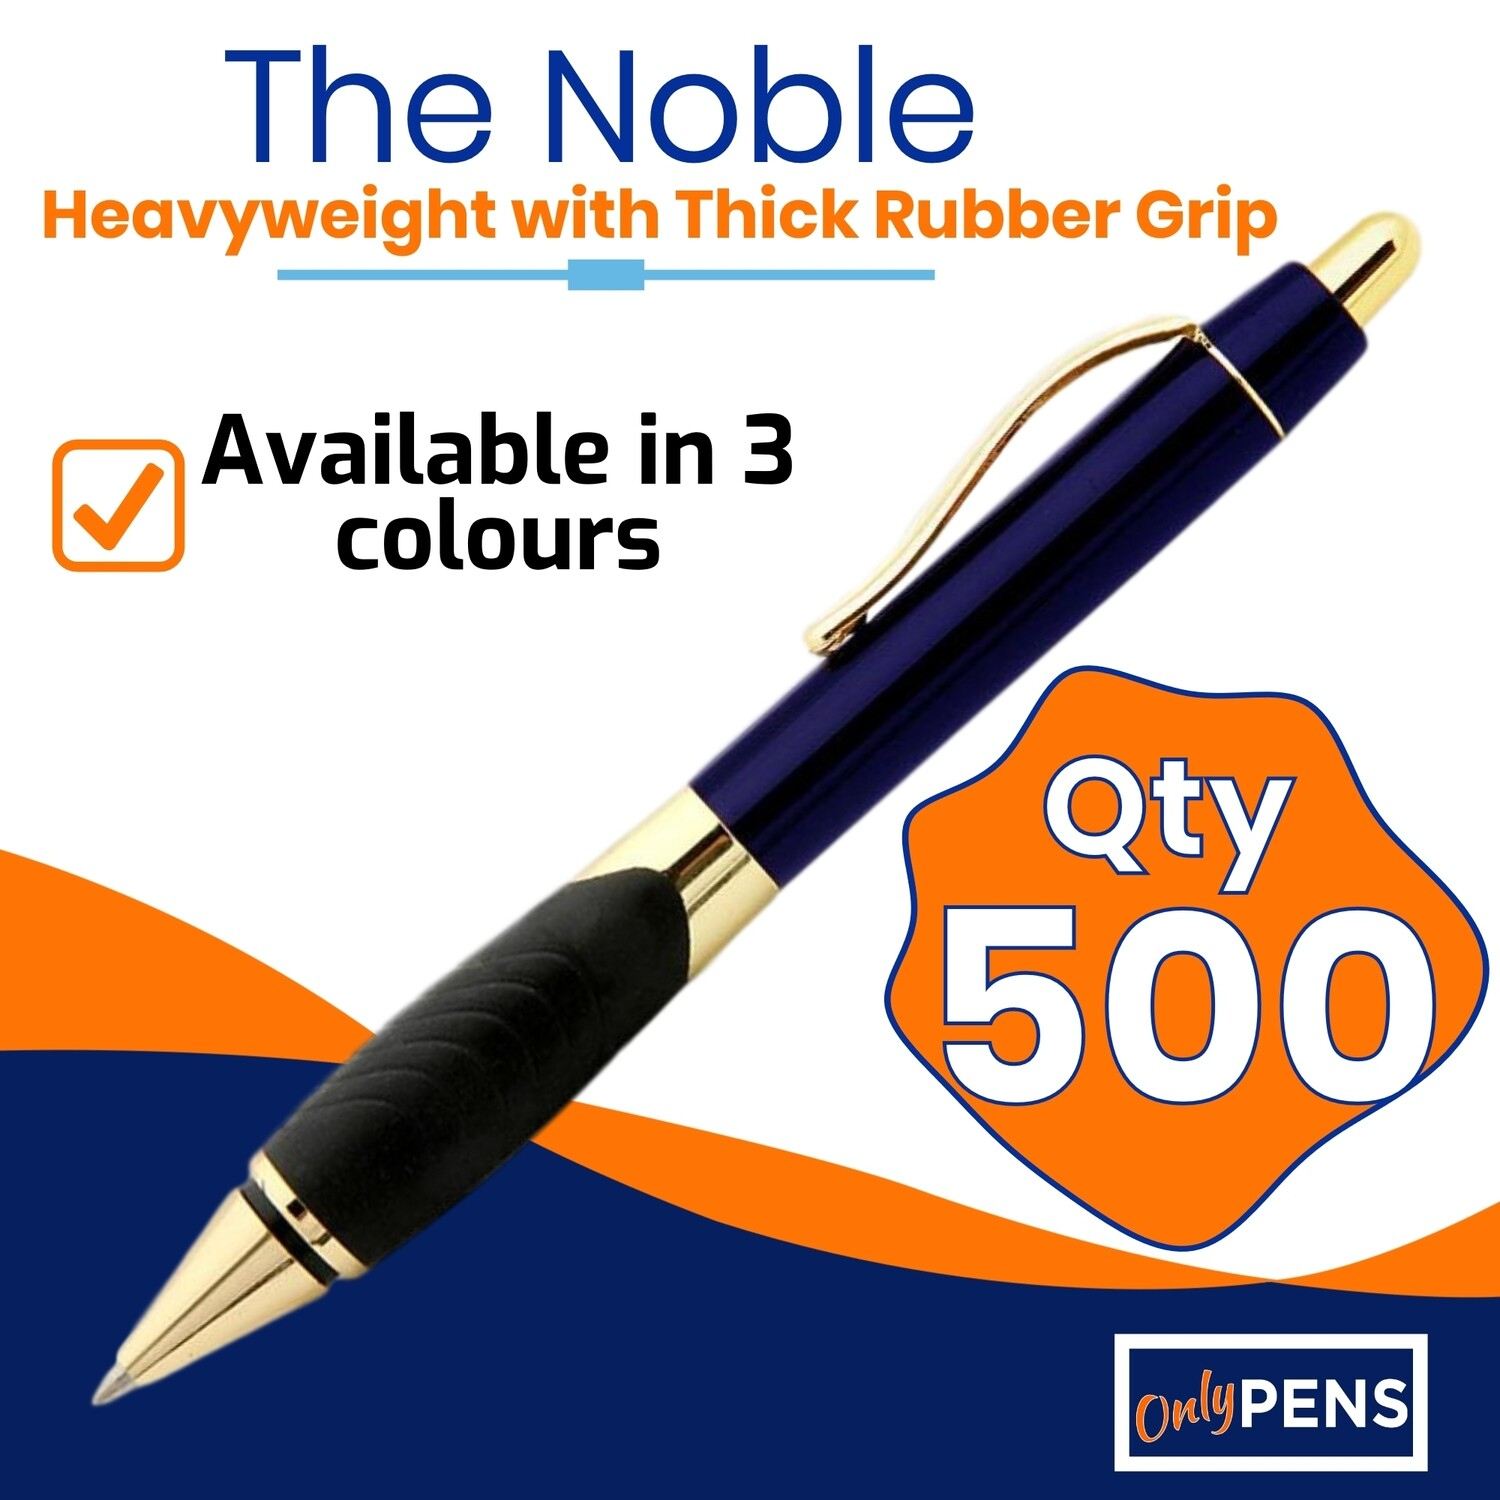 500 x THE NOBLE EXECUTIVE PENS